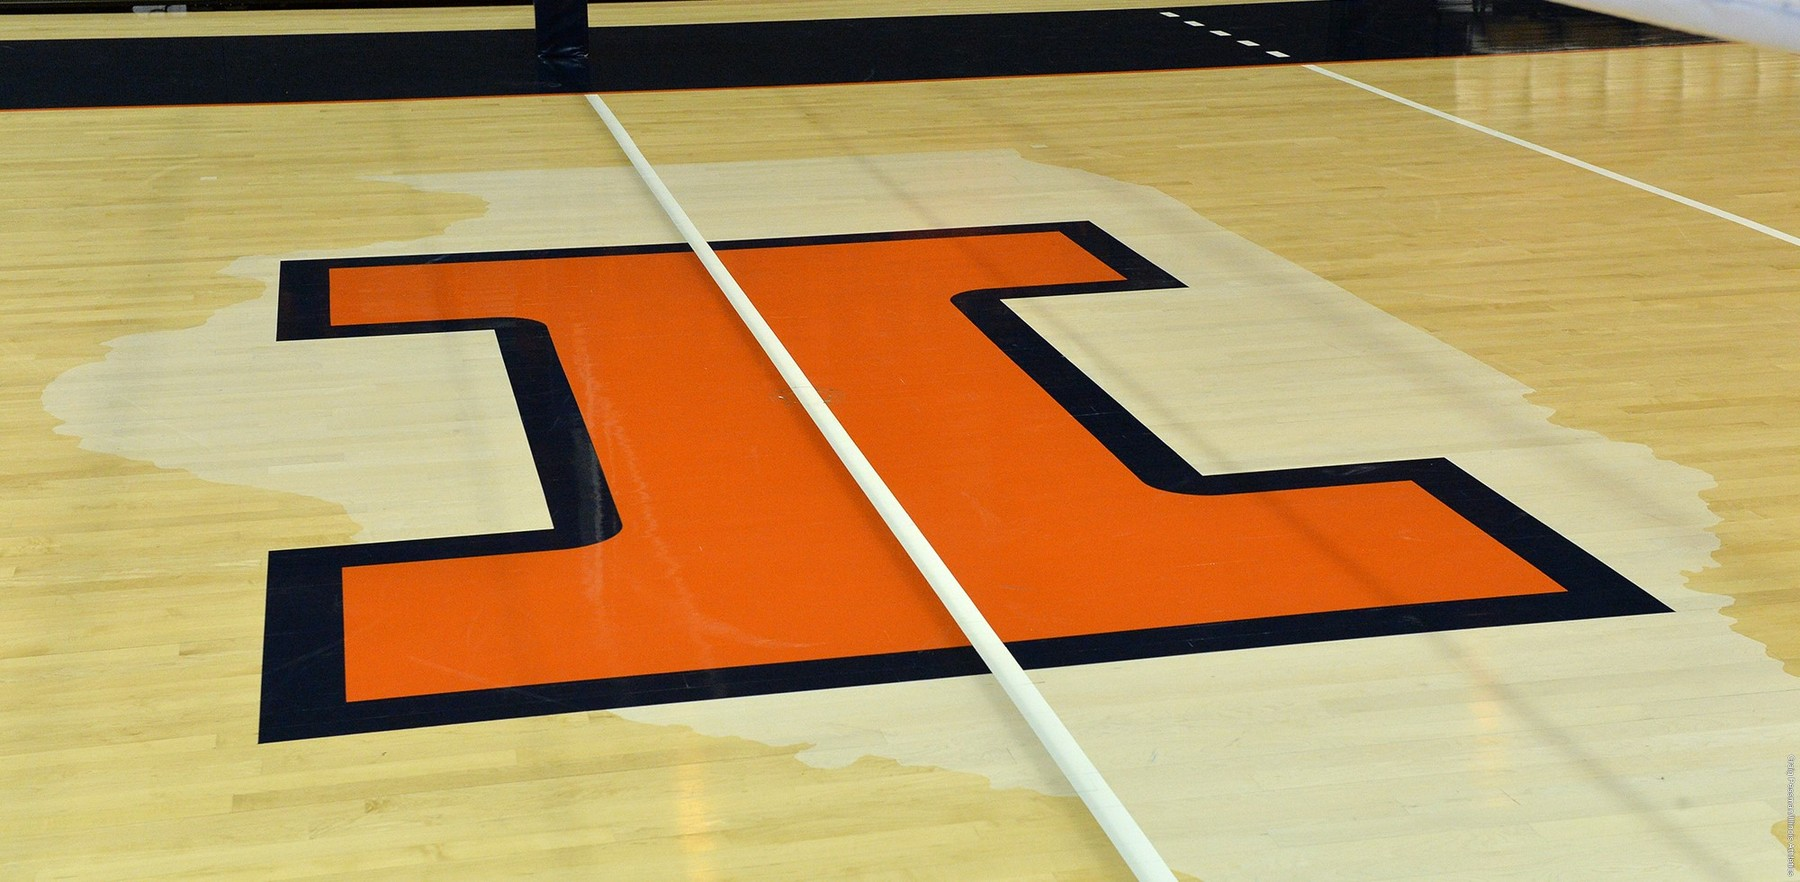 Illini Volleyball's home court